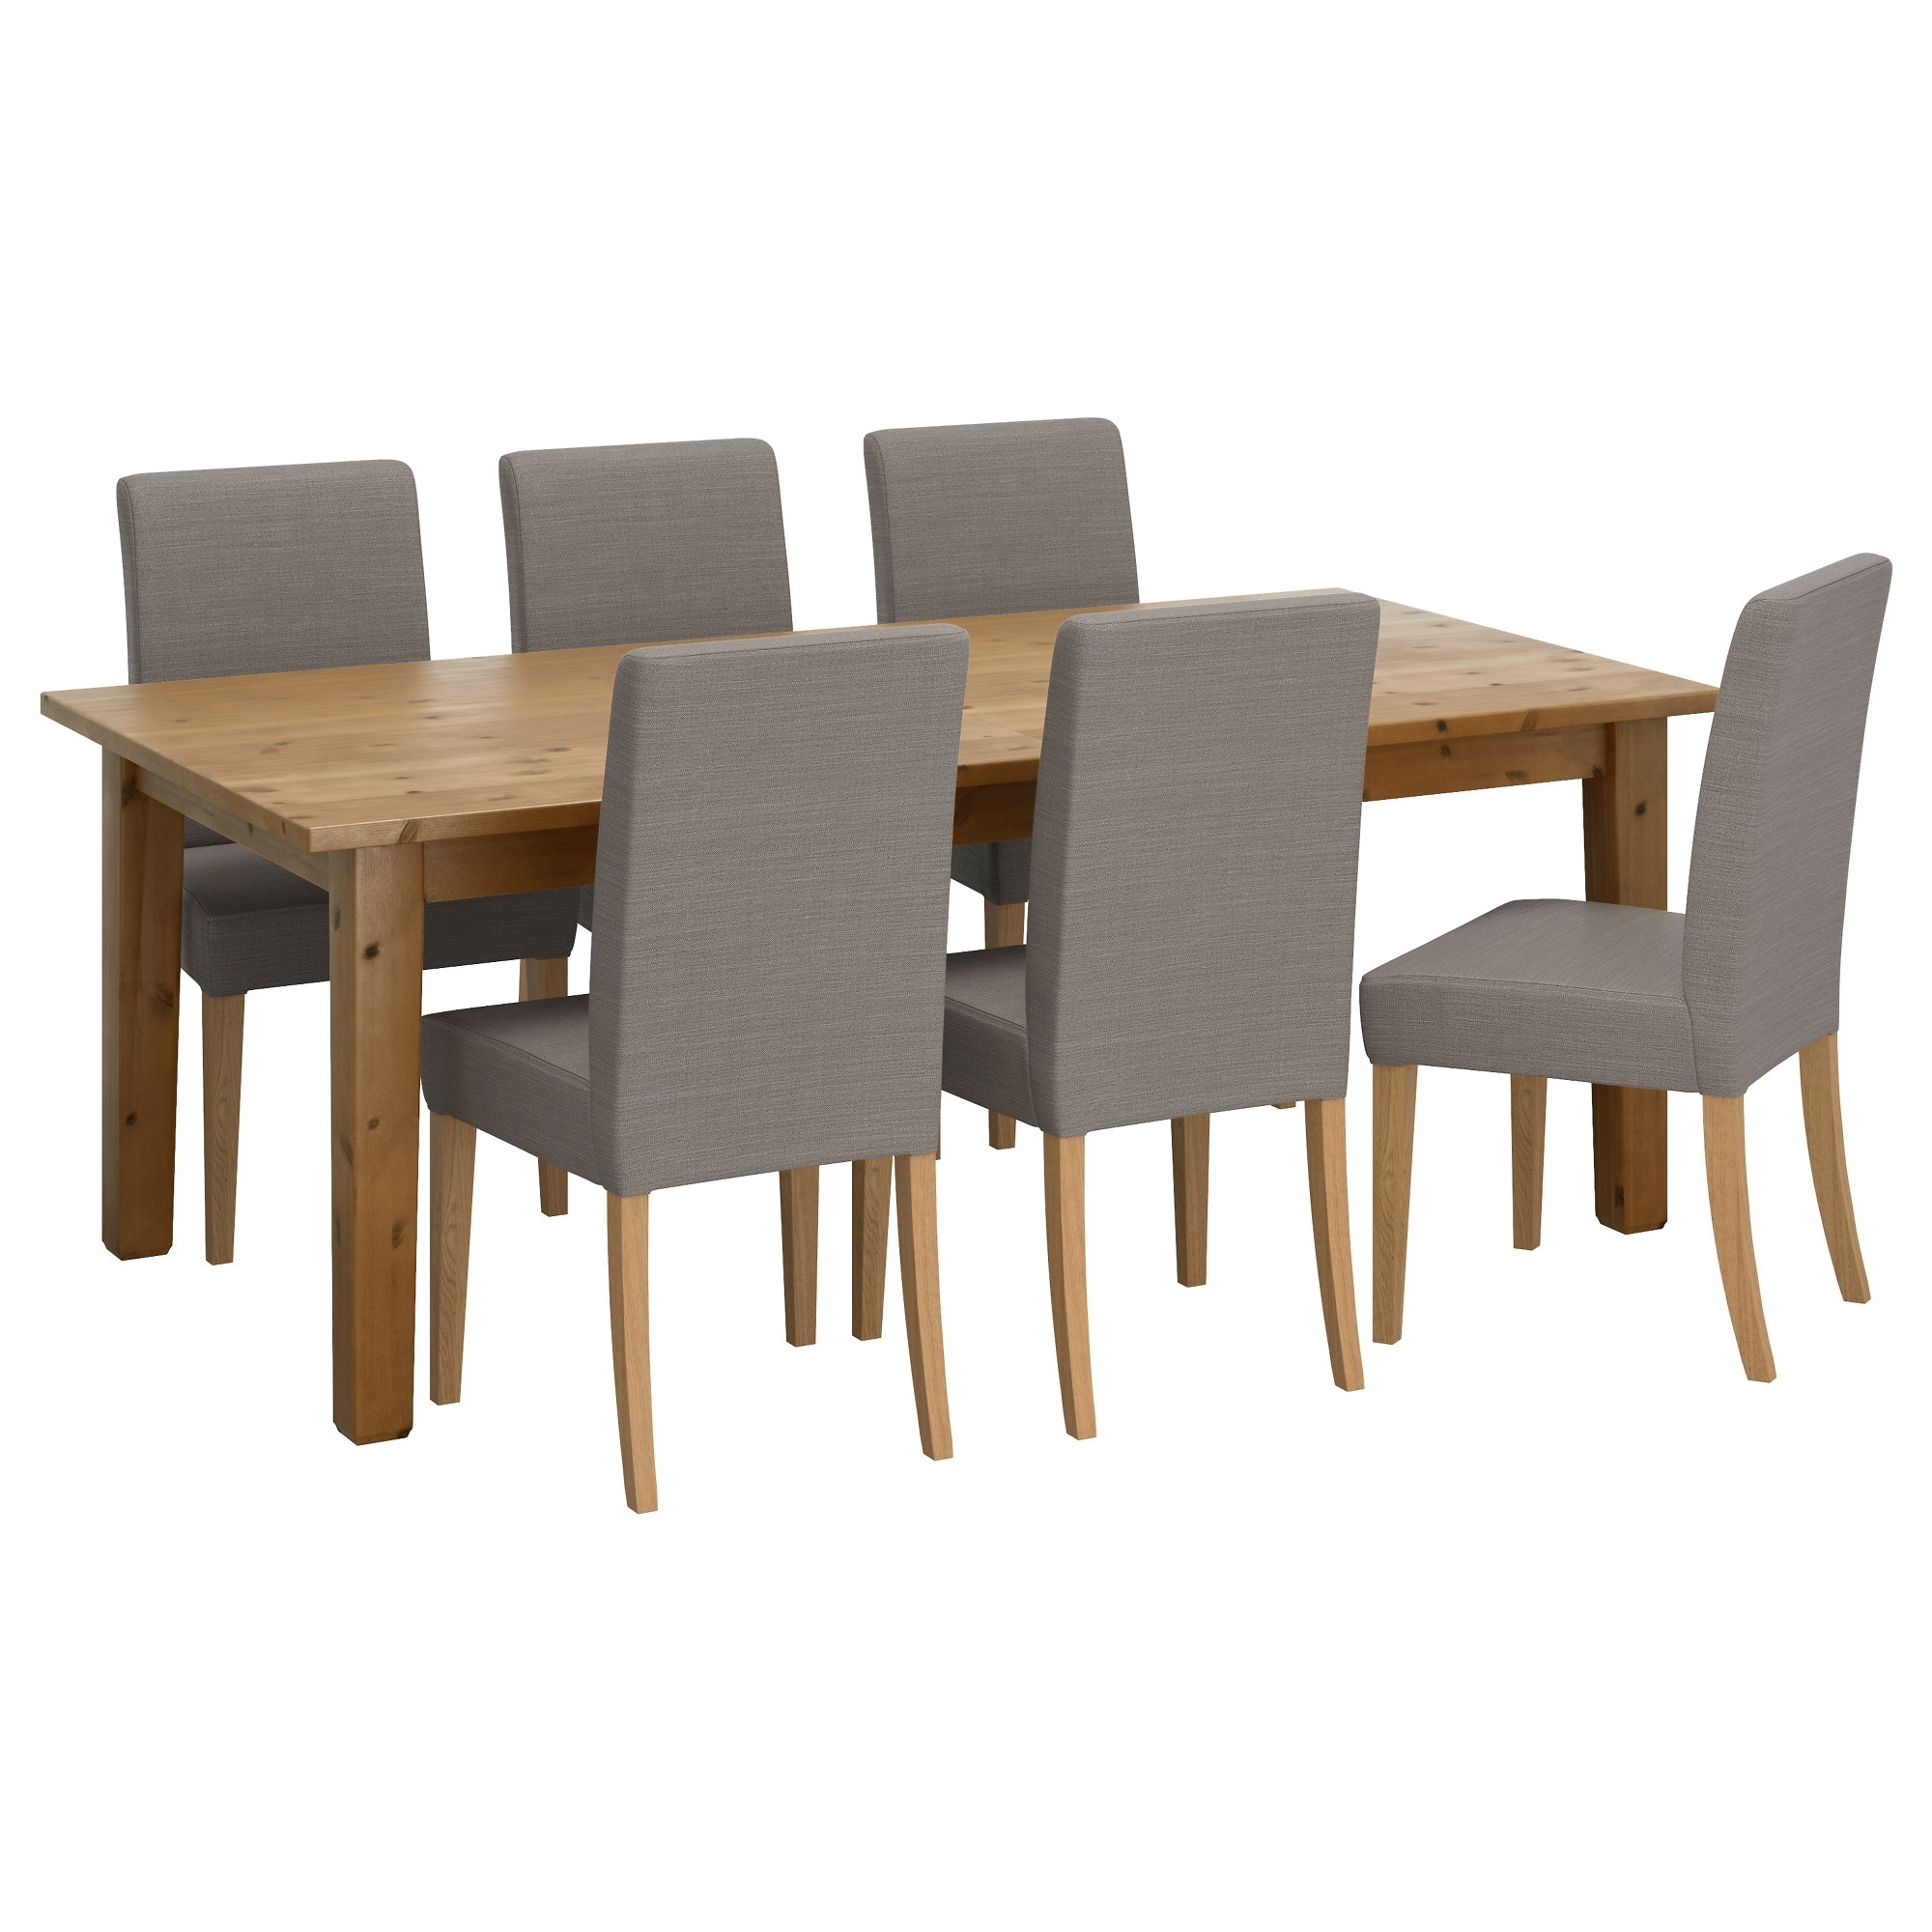 2017 6 Chairs Dining Tables within 6 Seater Dining Table & Chairs